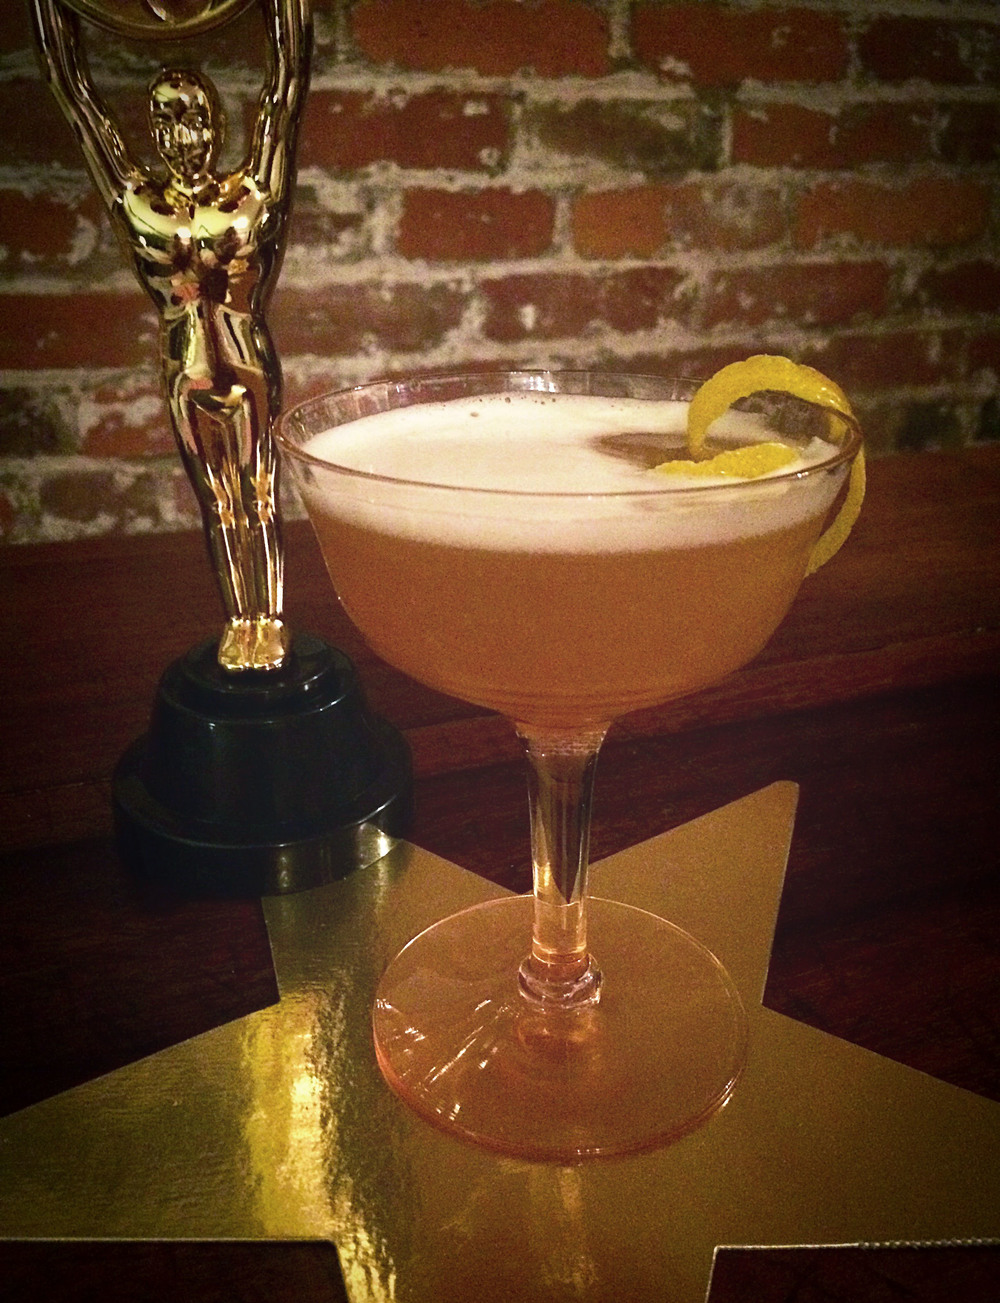 And the Oscar goes to... the French Martini!